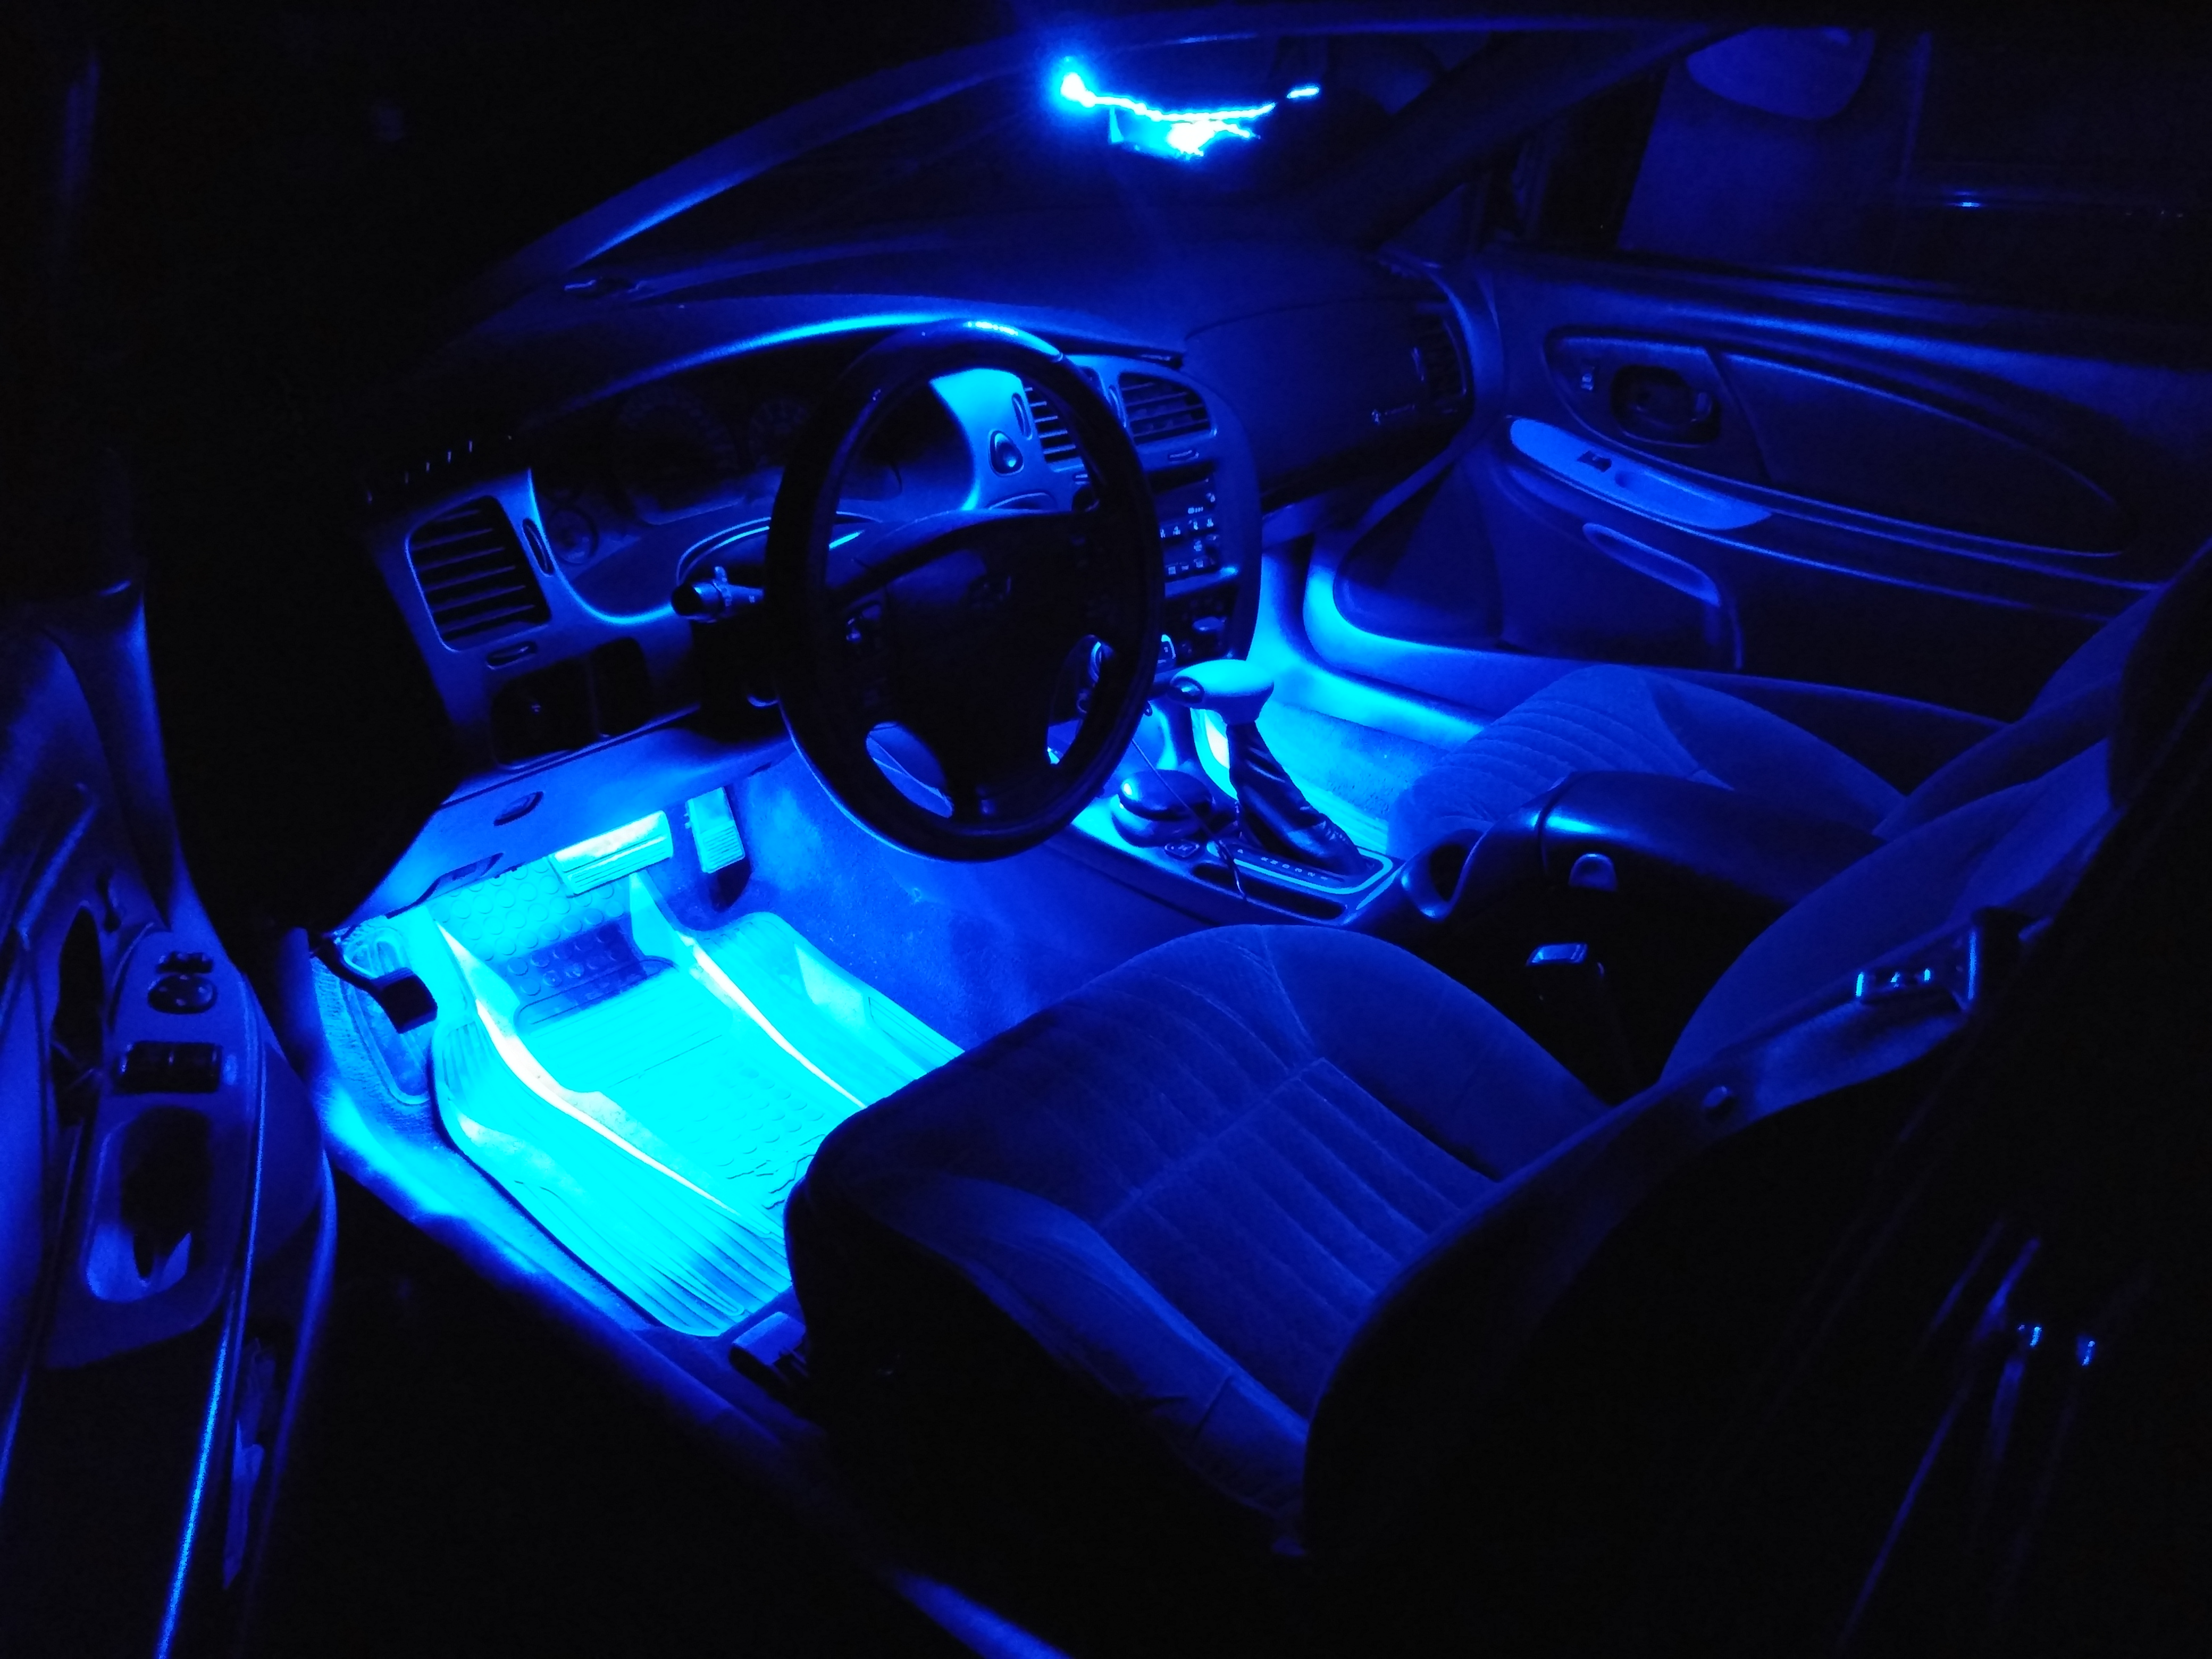 Full custom Blue LED interior lighting. Everything turns on and off like stock dome lighting. - 19147102